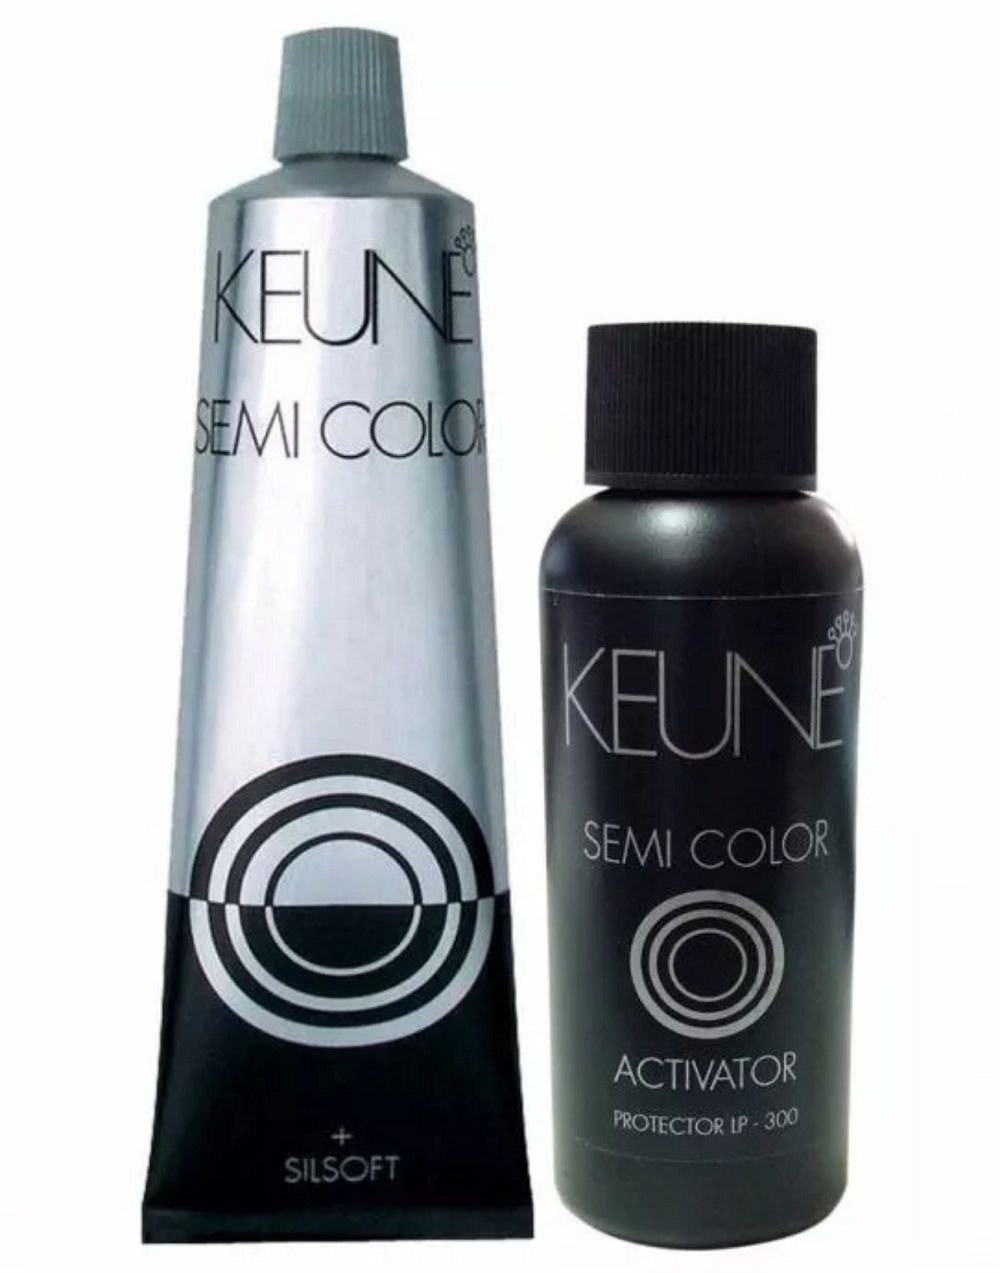 Kit Keune Semi Color 60ml - Cor 8.3 - Louro Claro Dourado + Ativador 60ml